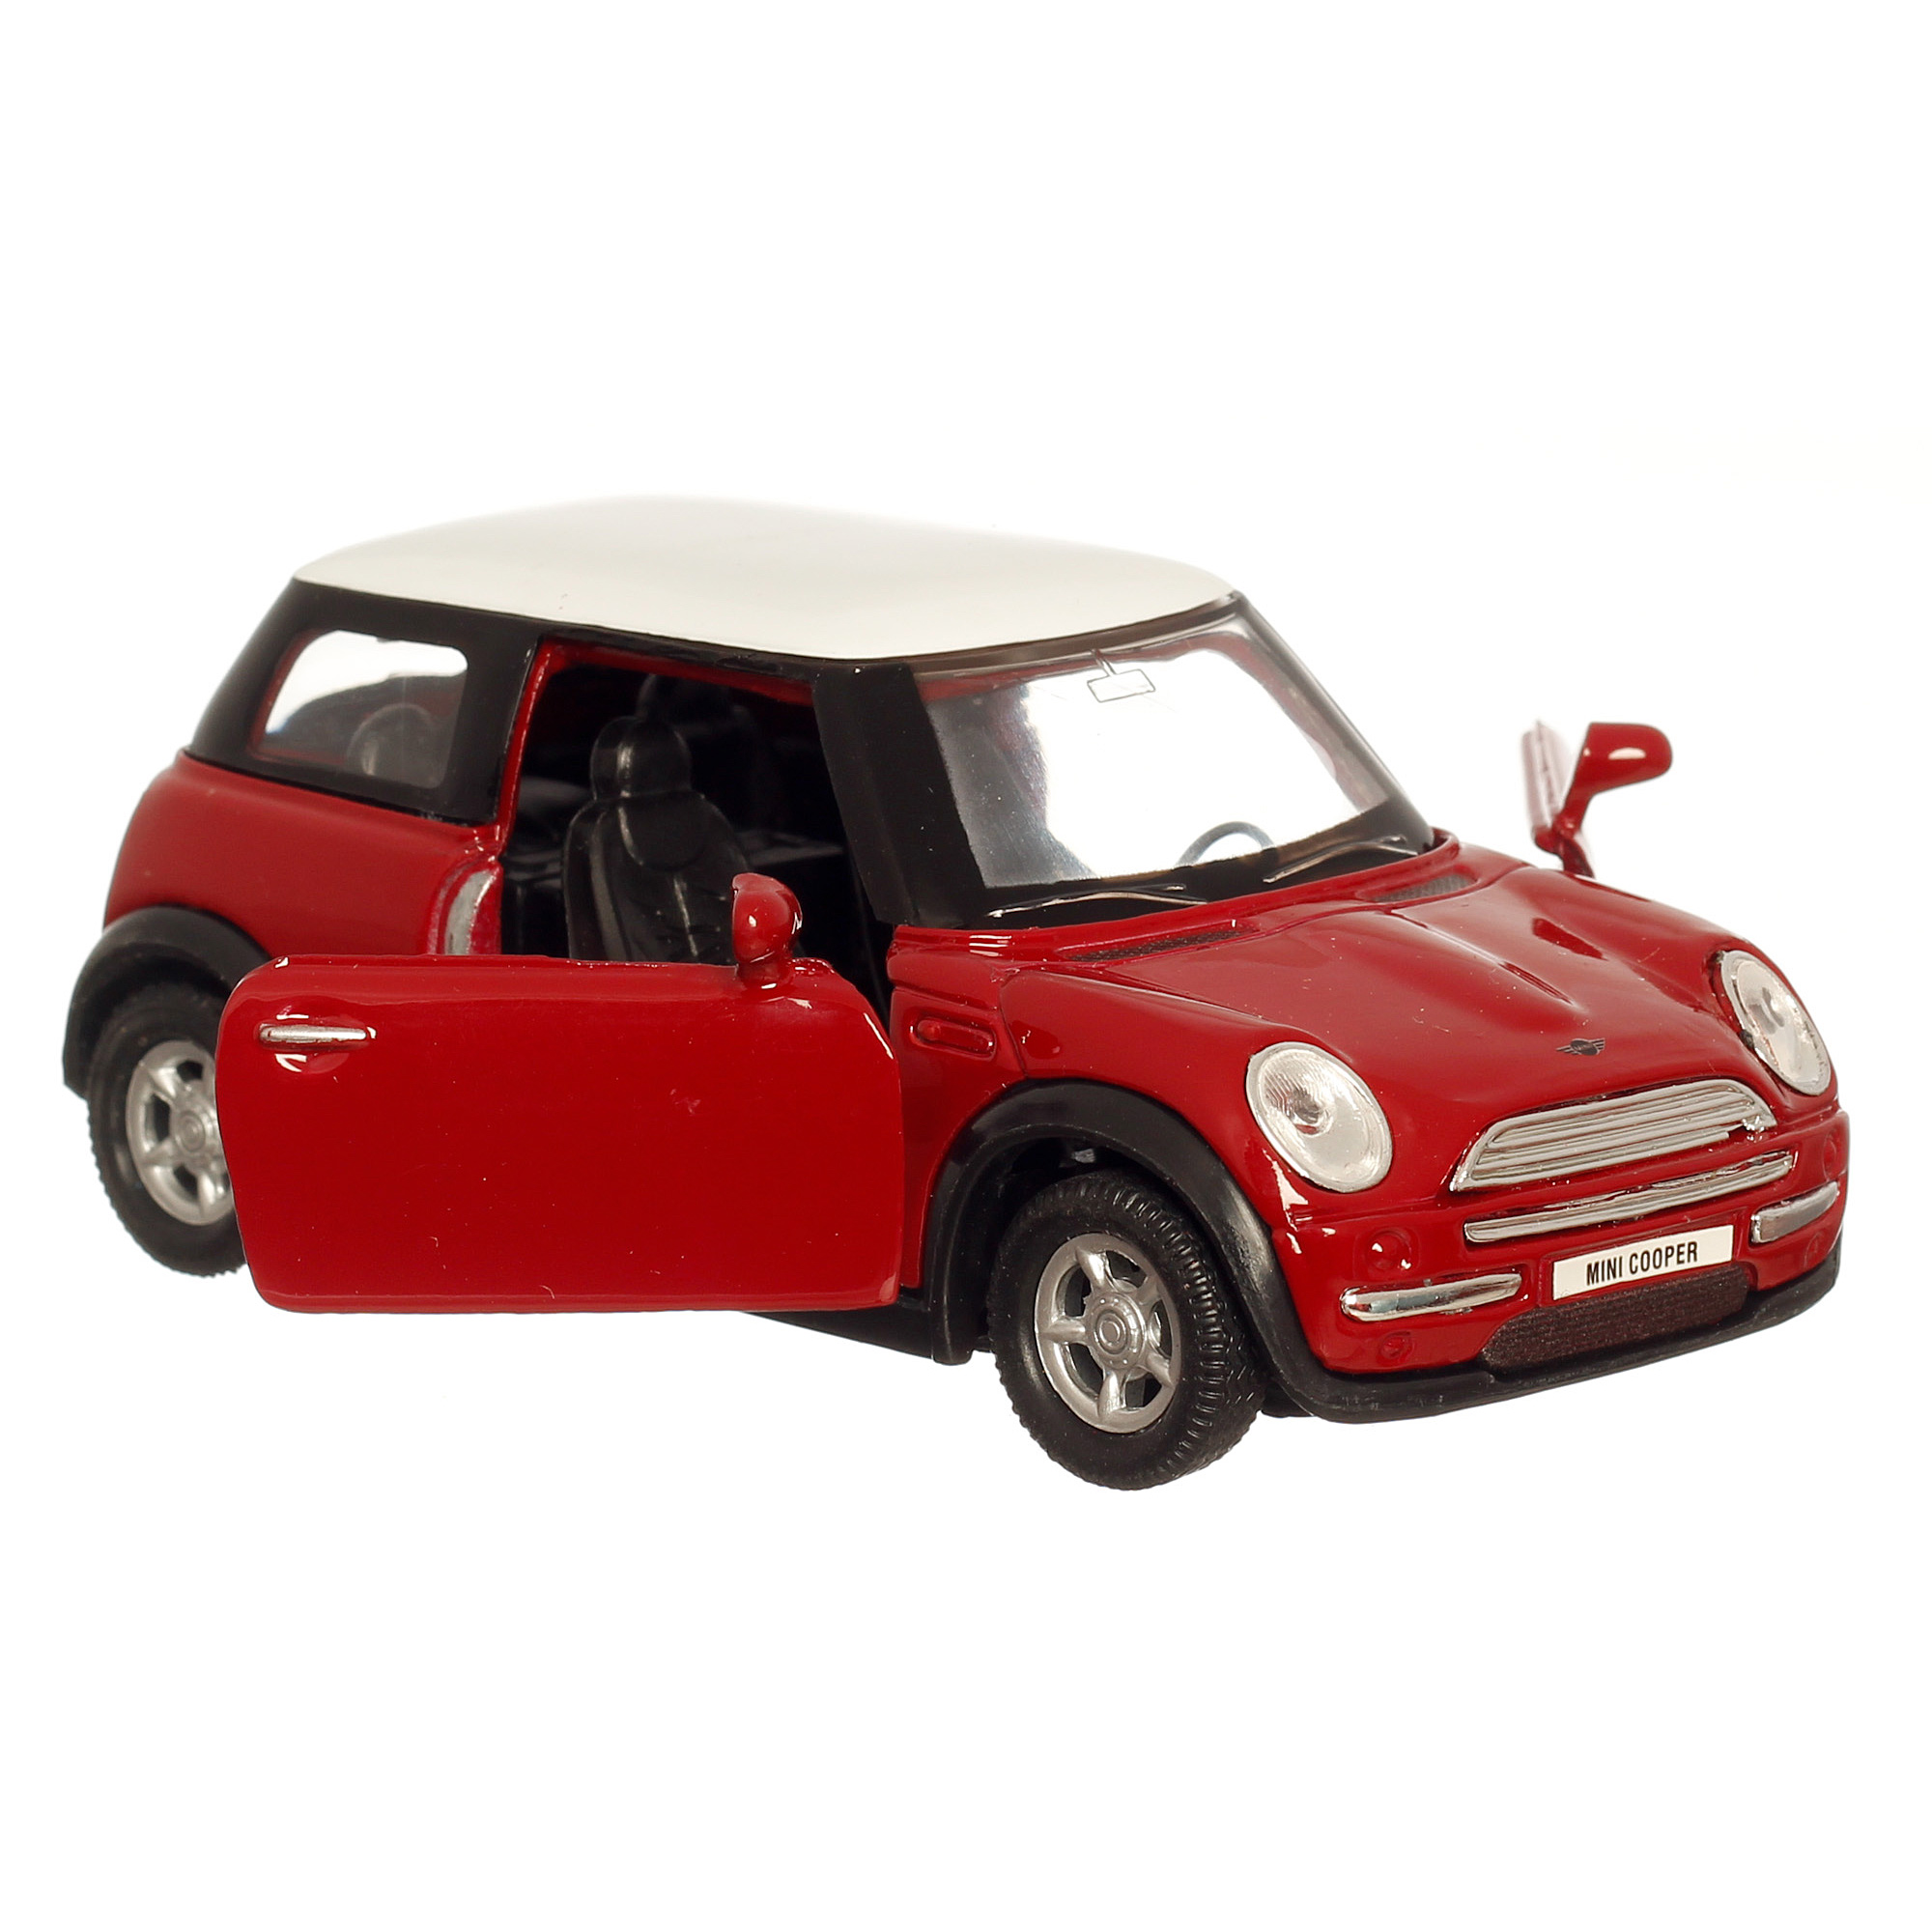 mini cooper metall 10cm weinrot modellauto ebay. Black Bedroom Furniture Sets. Home Design Ideas